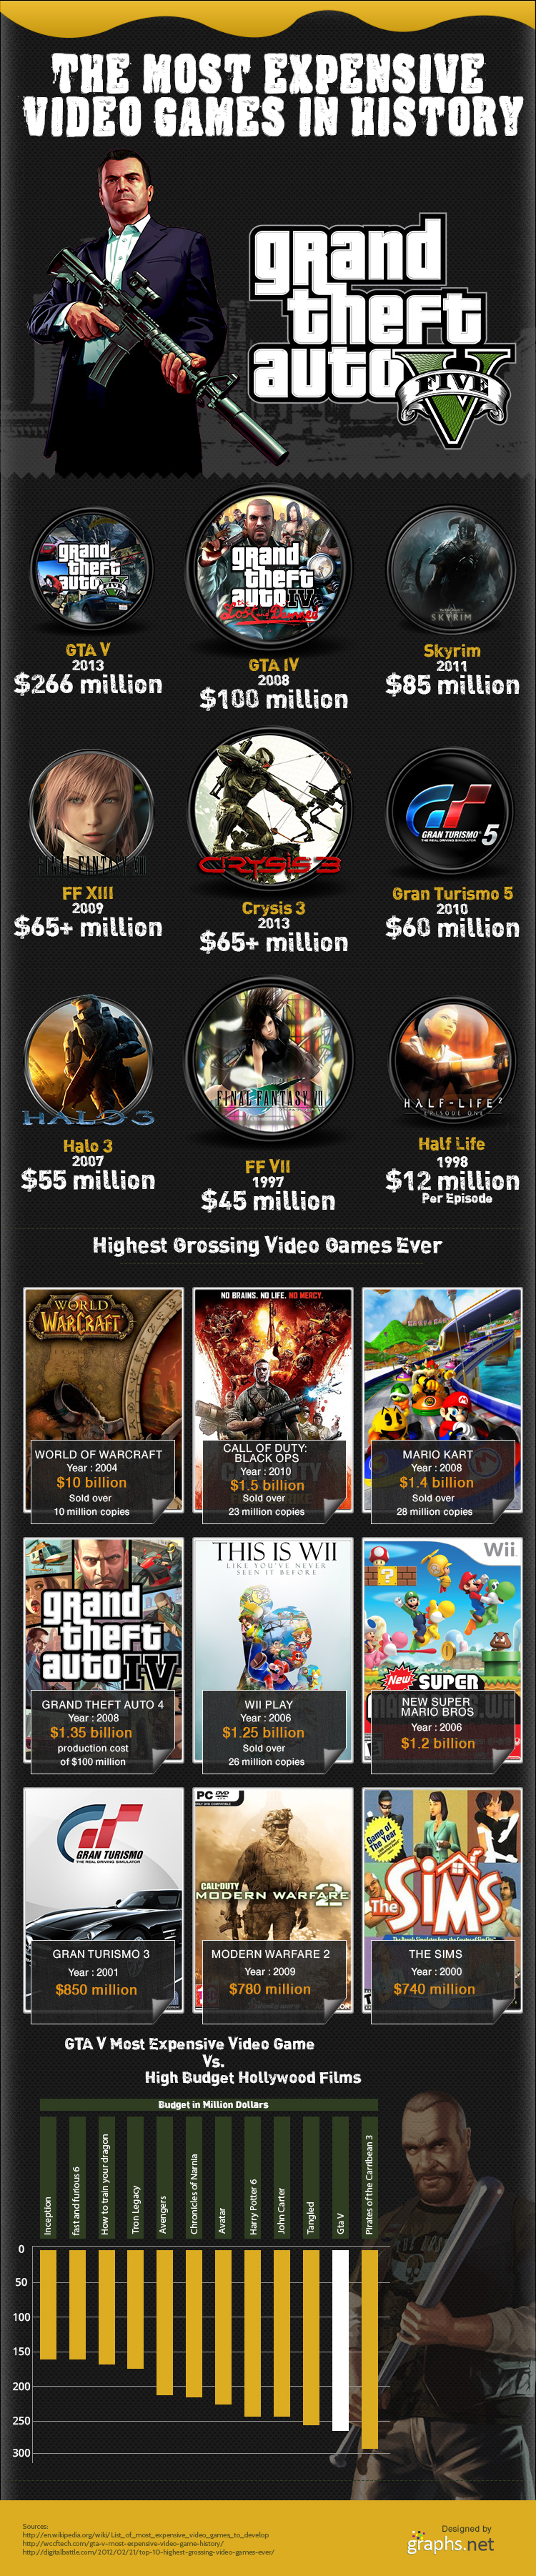 Grand Theft Auto V -The Most Expensive Video Game in History